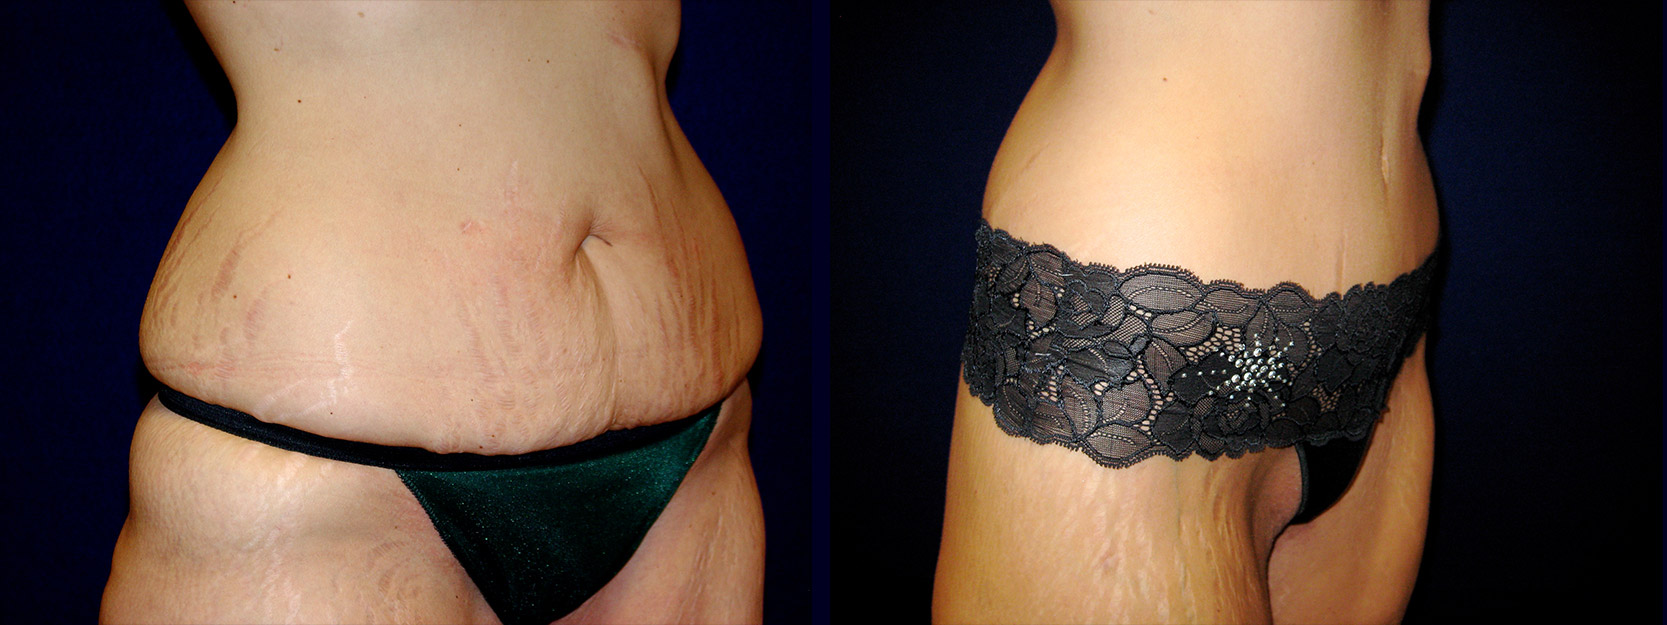 Right 3/4 View - Circumferential Abdominoplasty After Massive Weight Loss